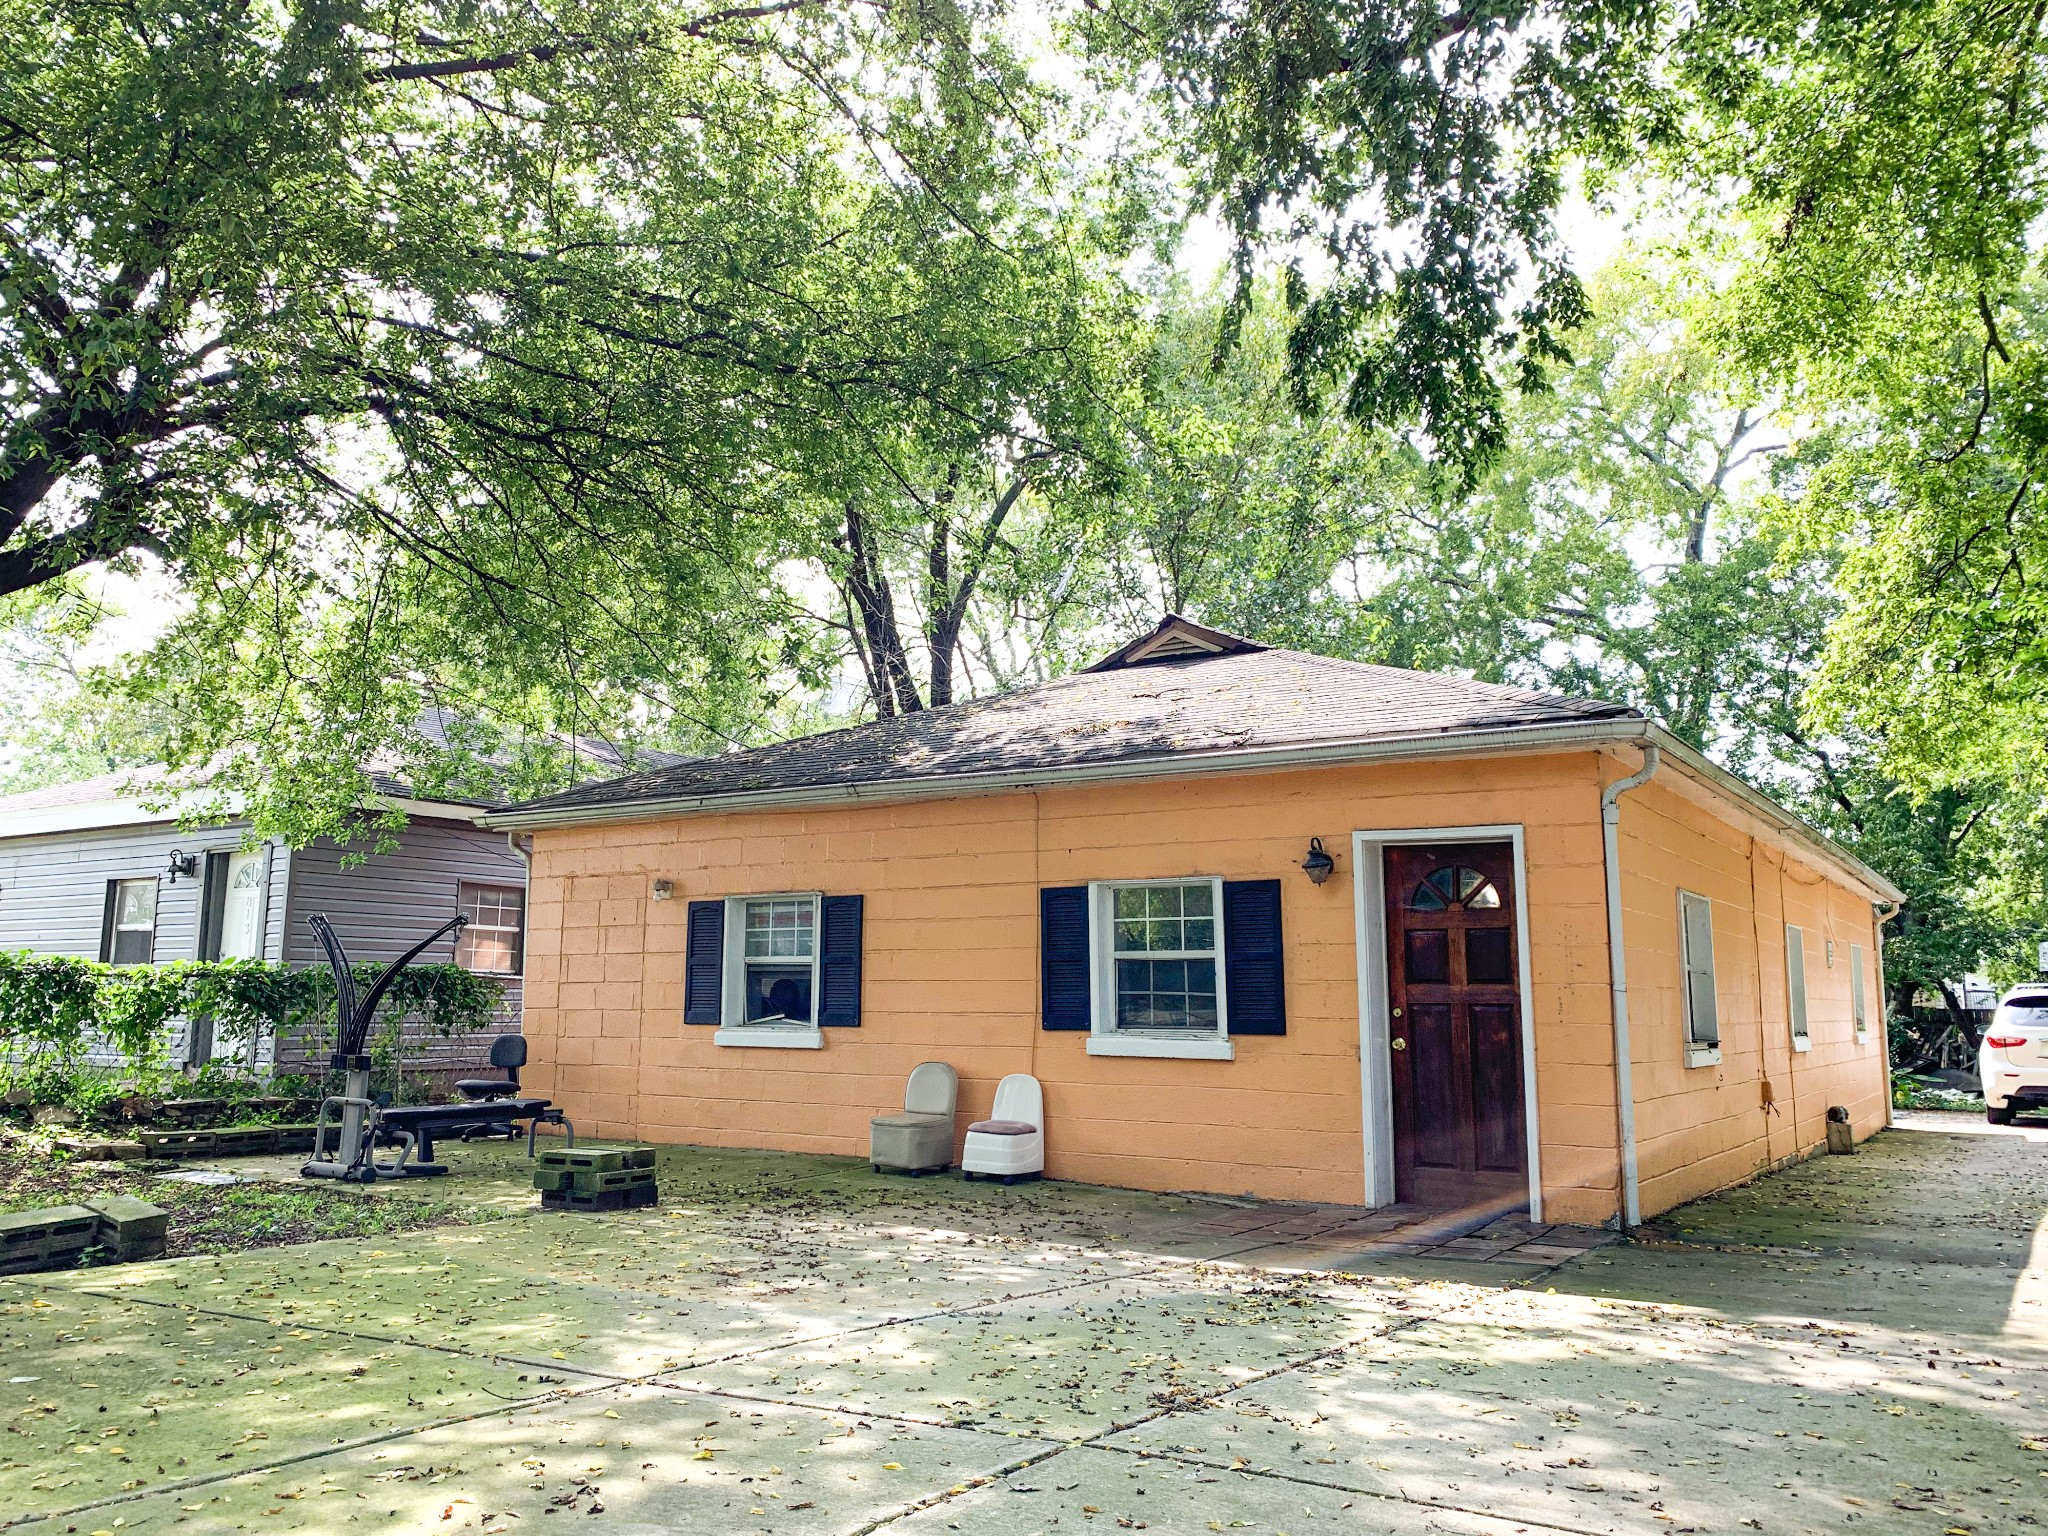 Great Opportunity for an Investment property/first time home buyers! 3 Bed / 1.5 bath located in the heart of North Nashville! Just minutes away from downtown! Great area with New Construction all around! Property is being sold as-is, seller to make no repairs. Refrigerator, Washer/Dryer to remain.